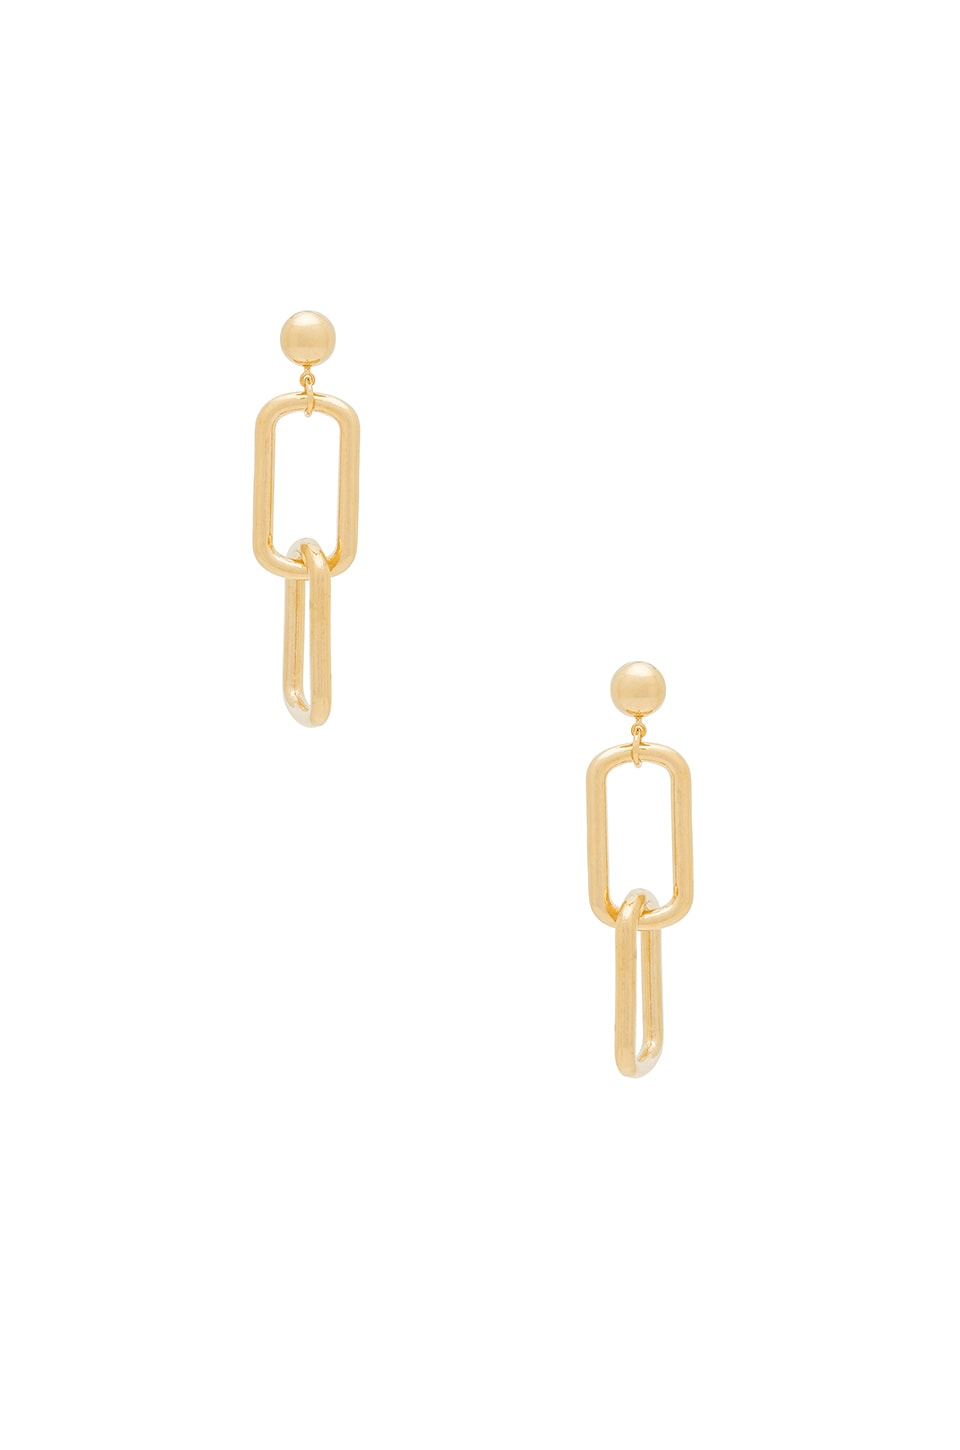 LARUICCI Chain Link Earring in Gold